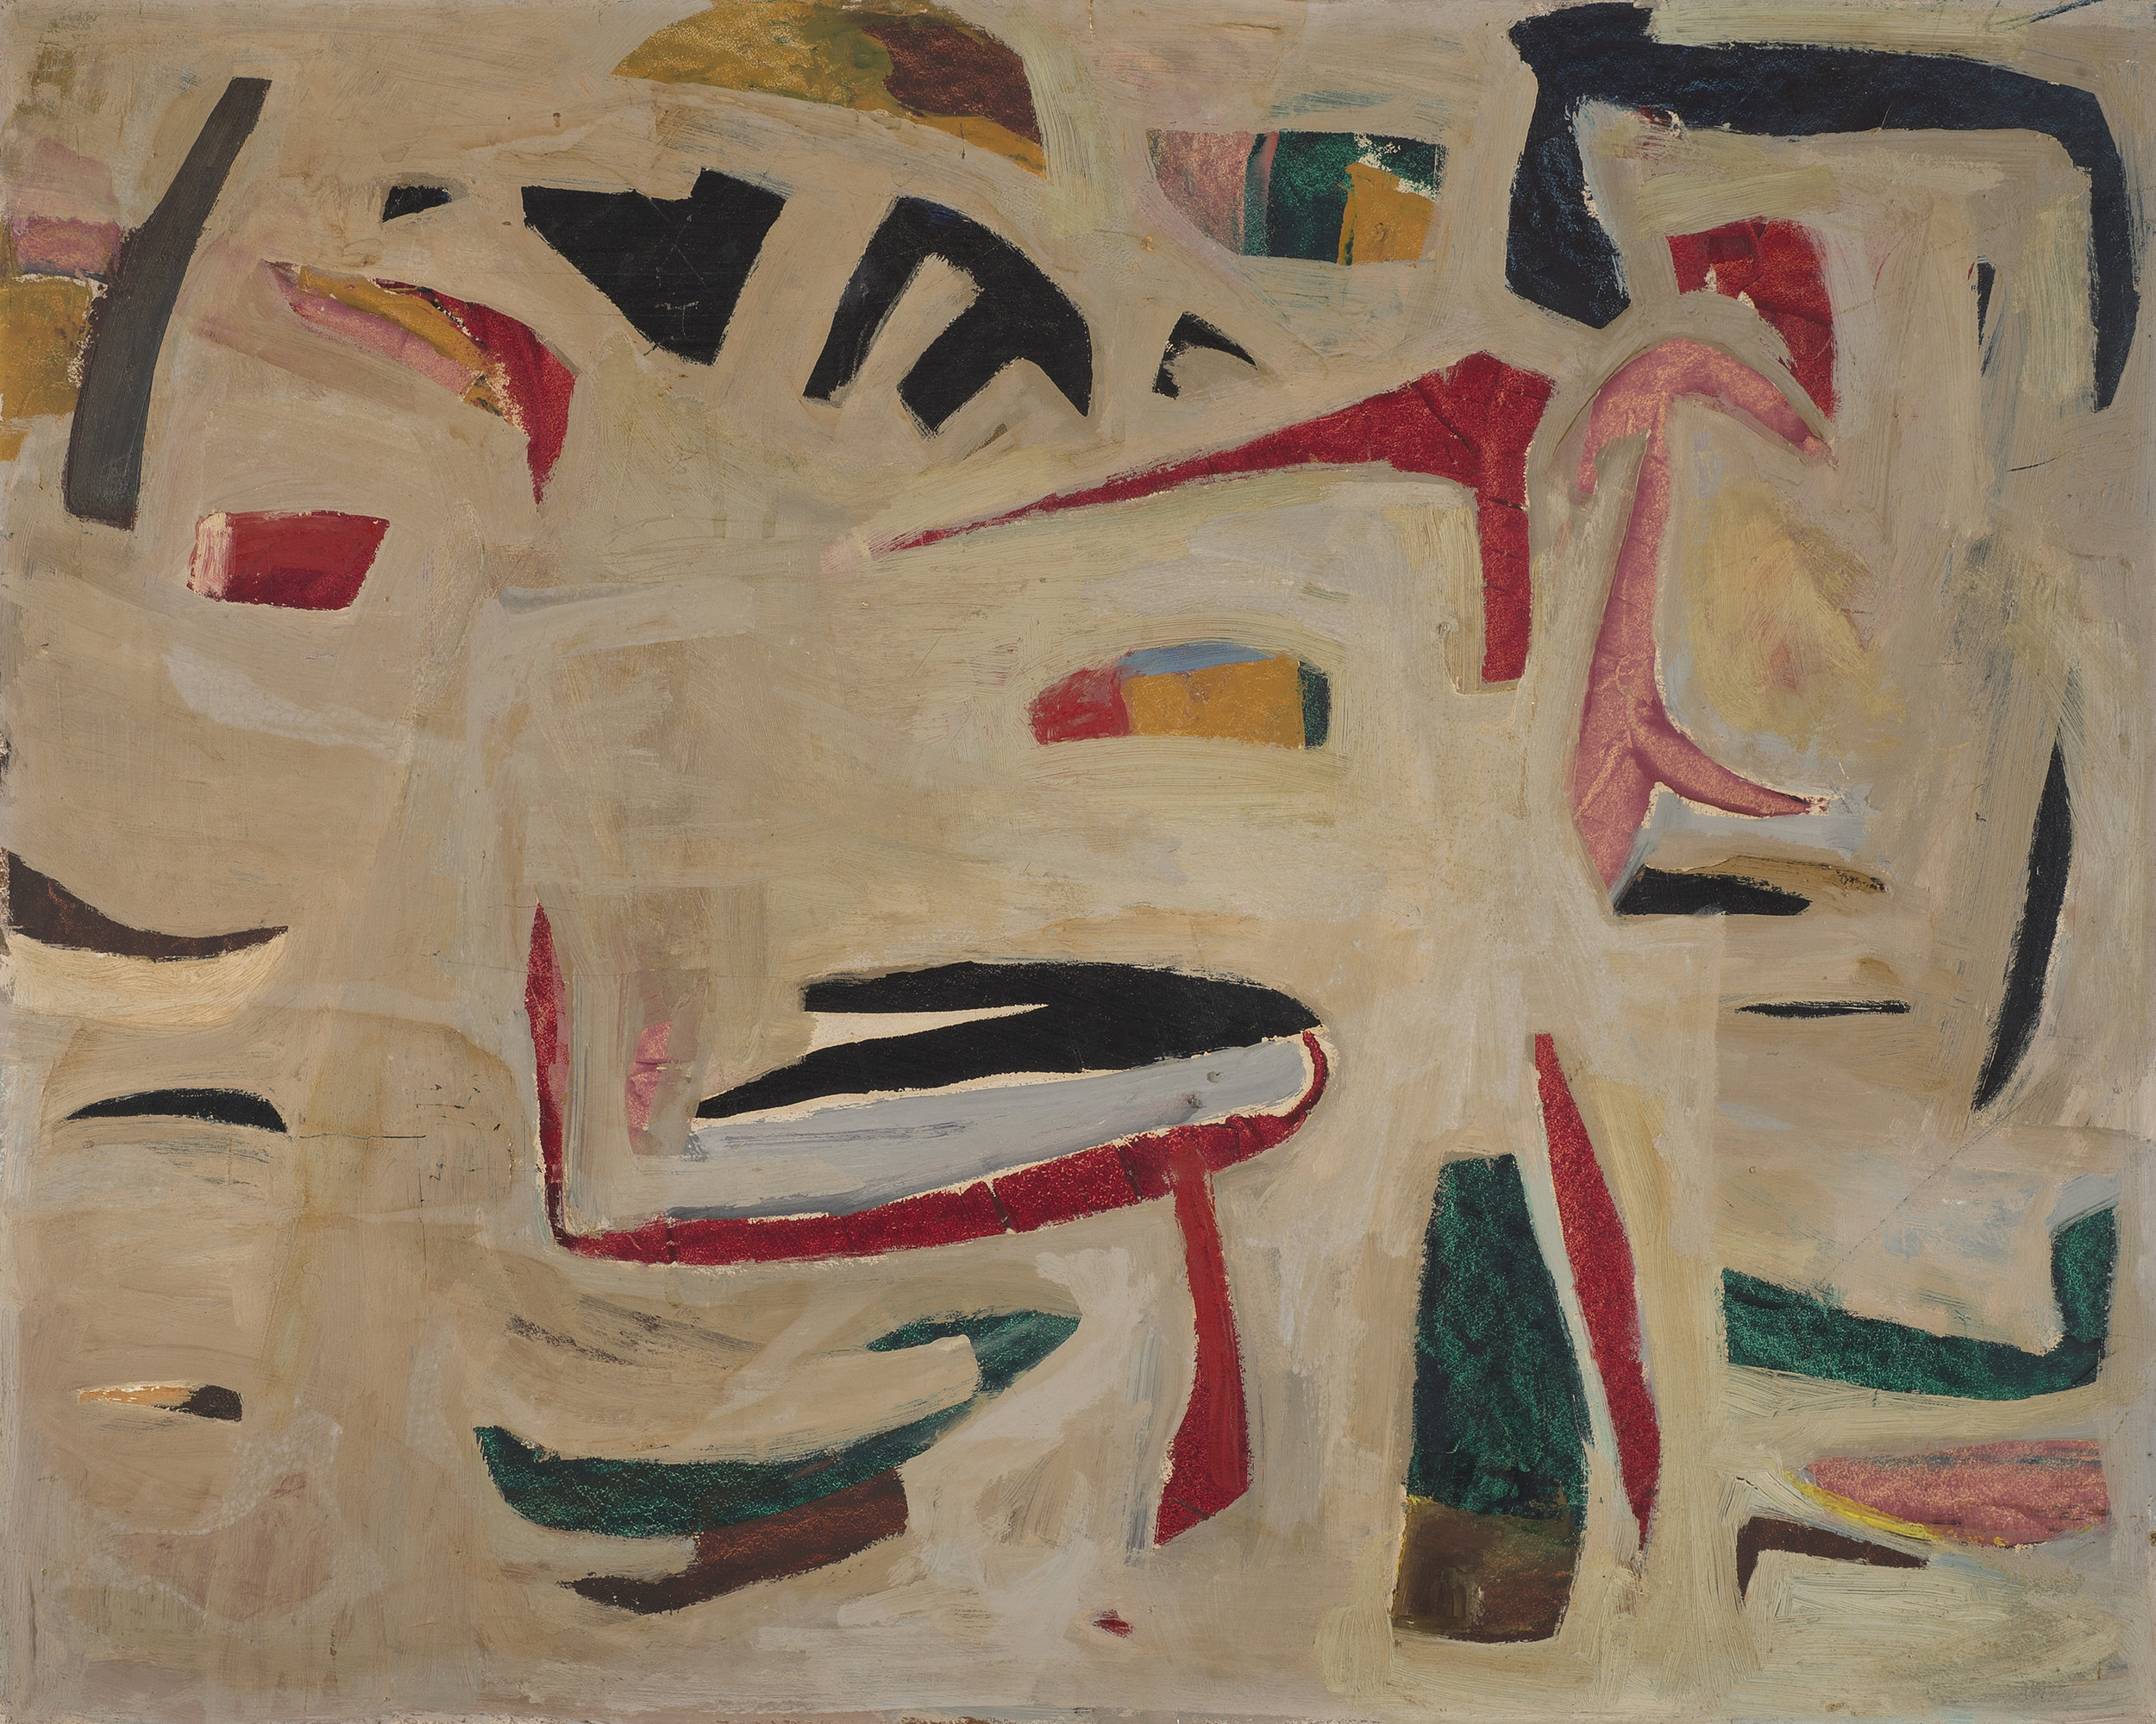 Untitled , 1955-56. Oil on hardboard (masonite), 24 x 30 in., (61 x 76 cm.), Private Collection